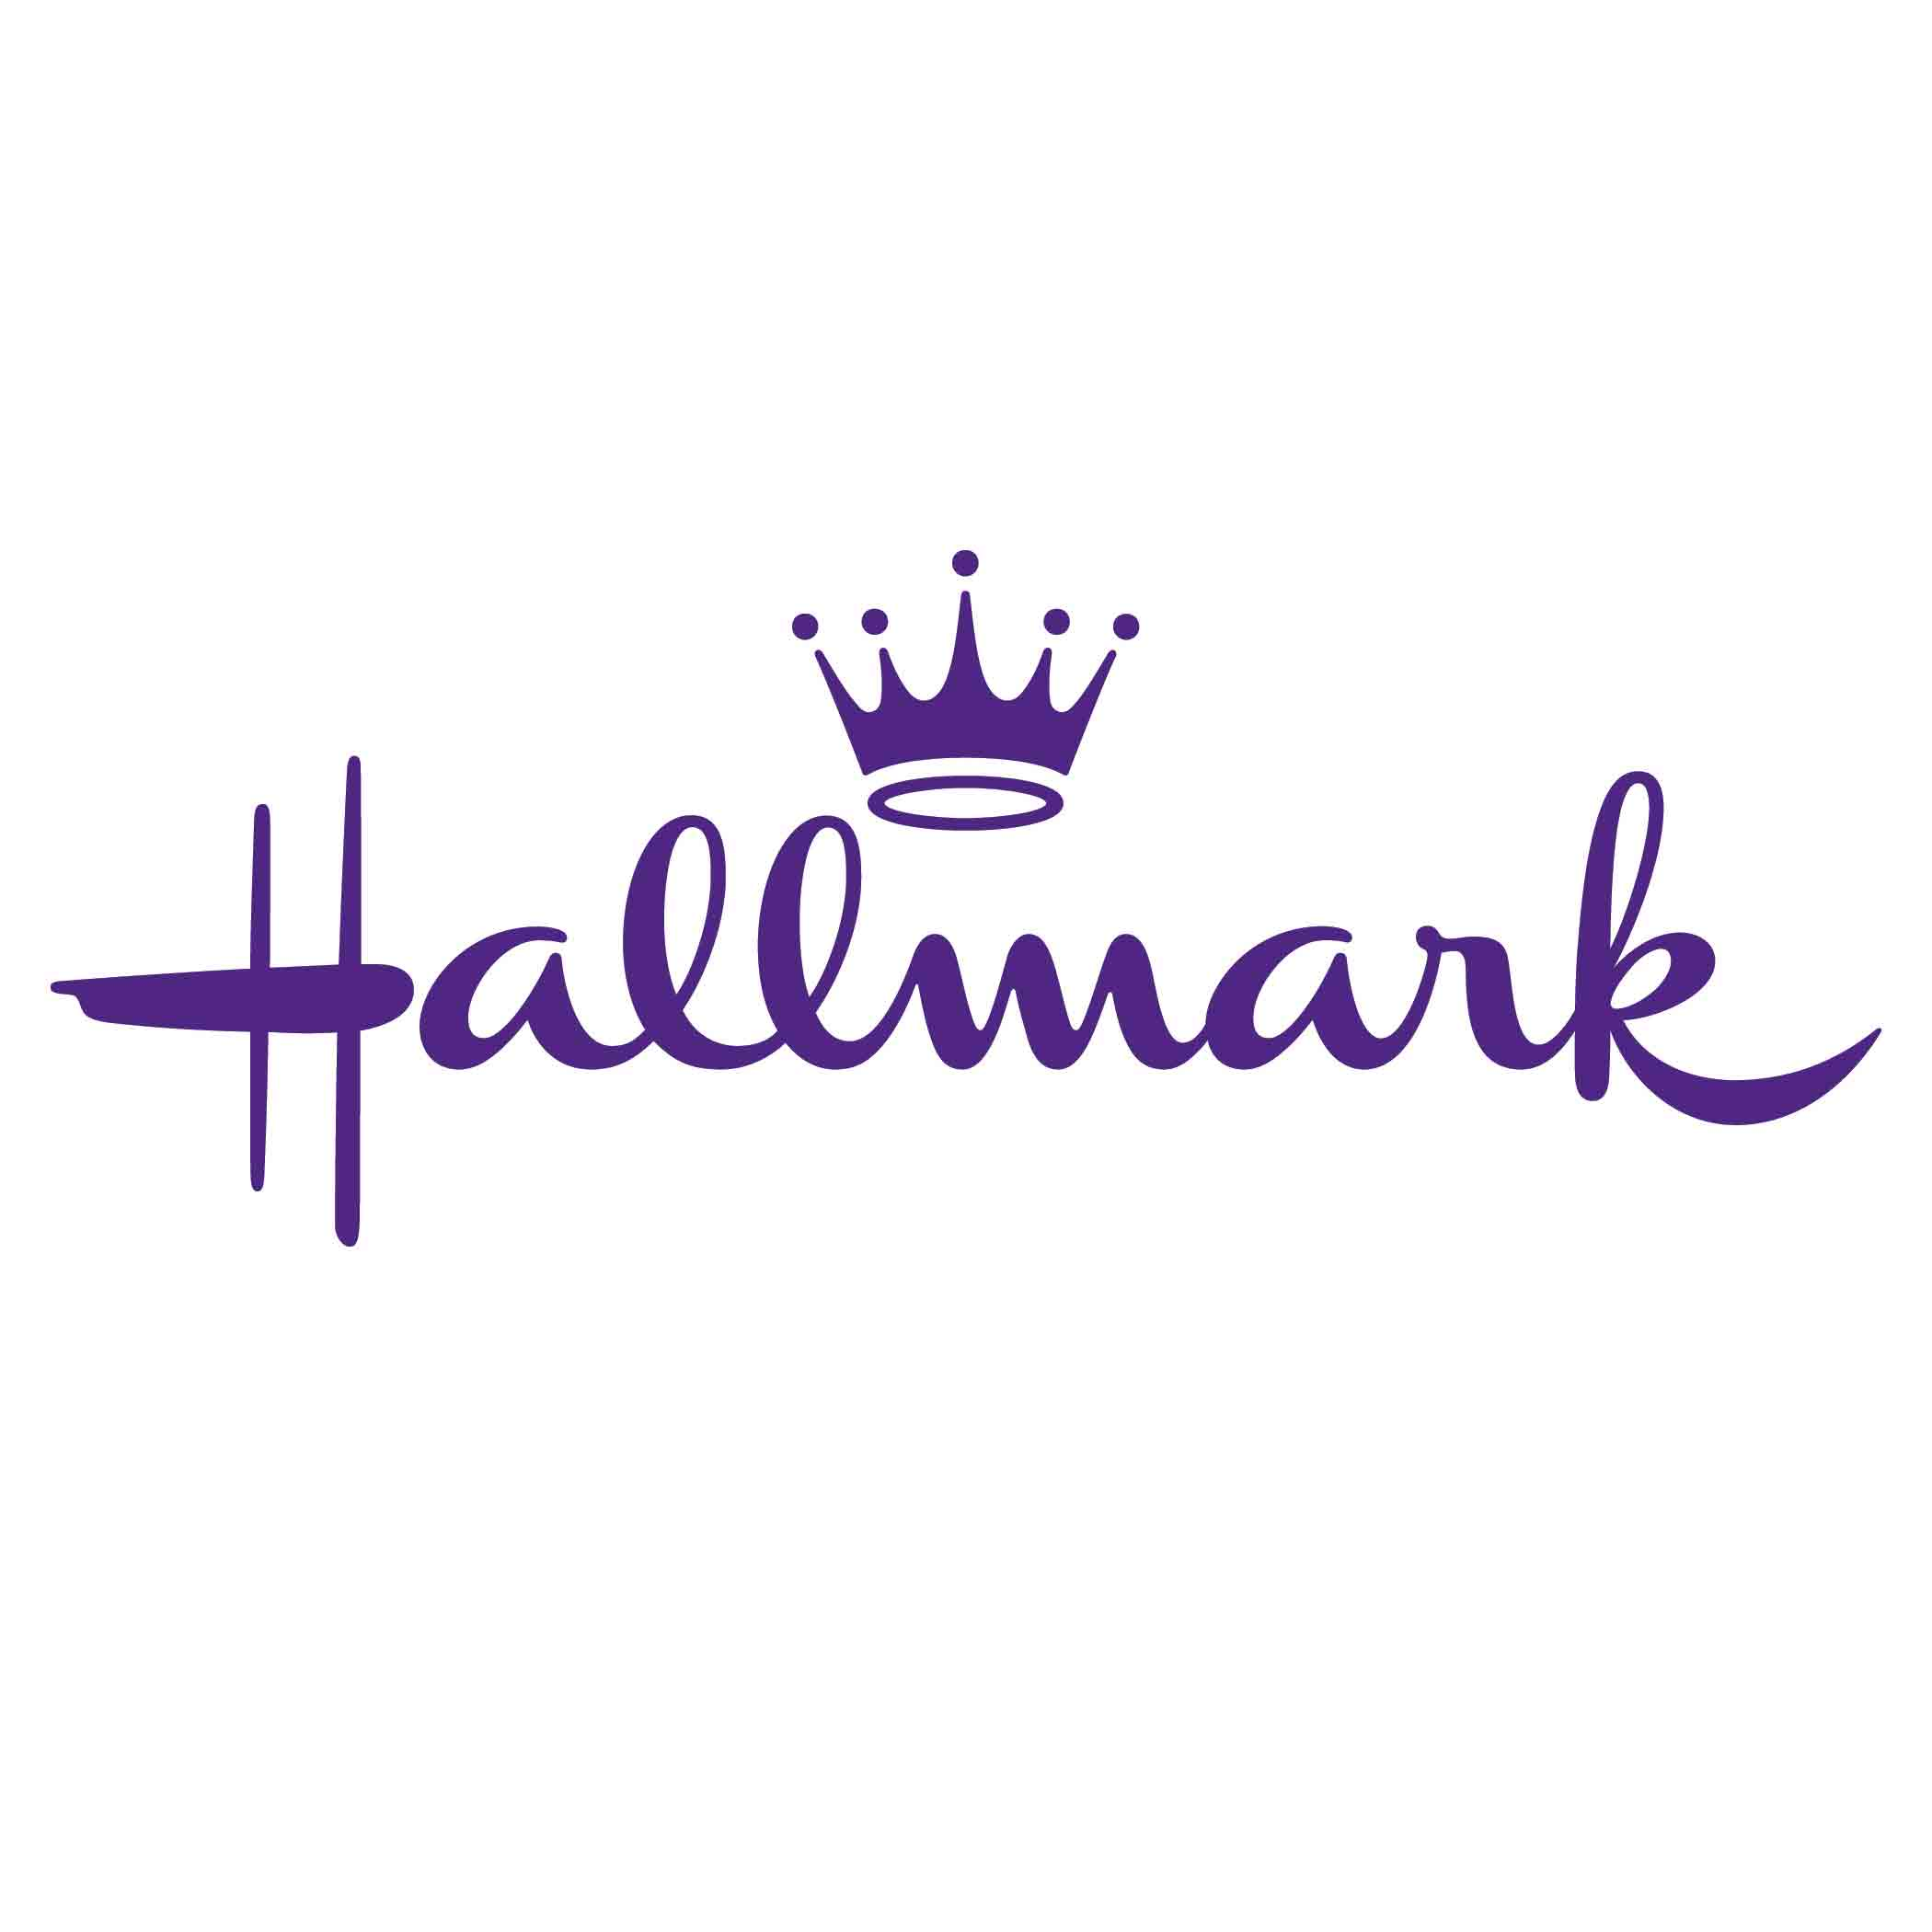 Hallmark named greeting card brand of the year in 2018 harris poll hallmark named greeting card brand of the year in 2018 harris poll equitrend study hallmark corporate m4hsunfo